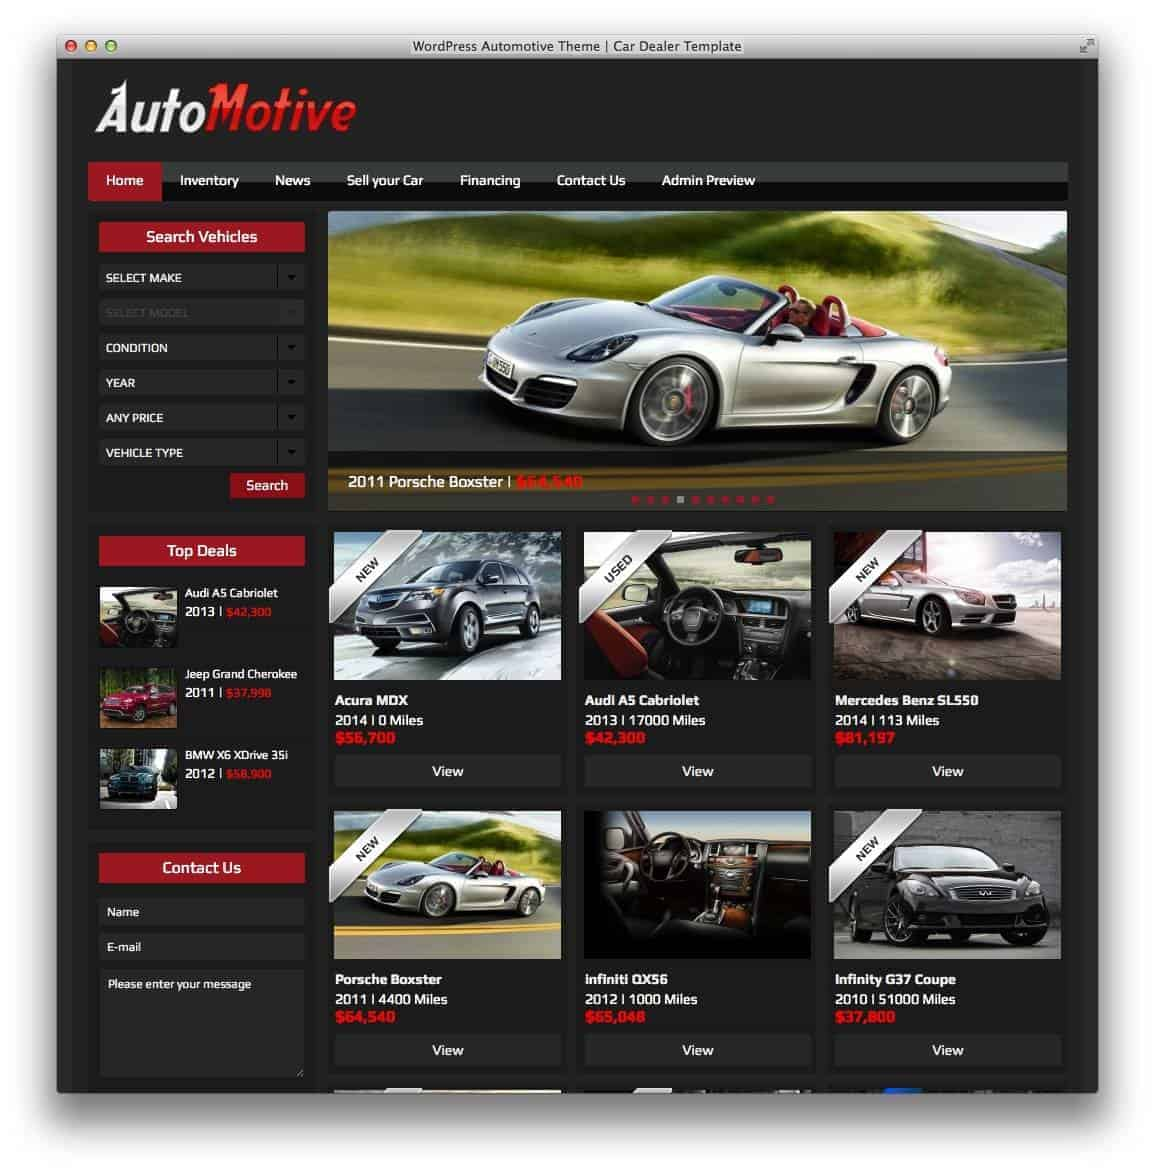 wordpress-automotive-theme